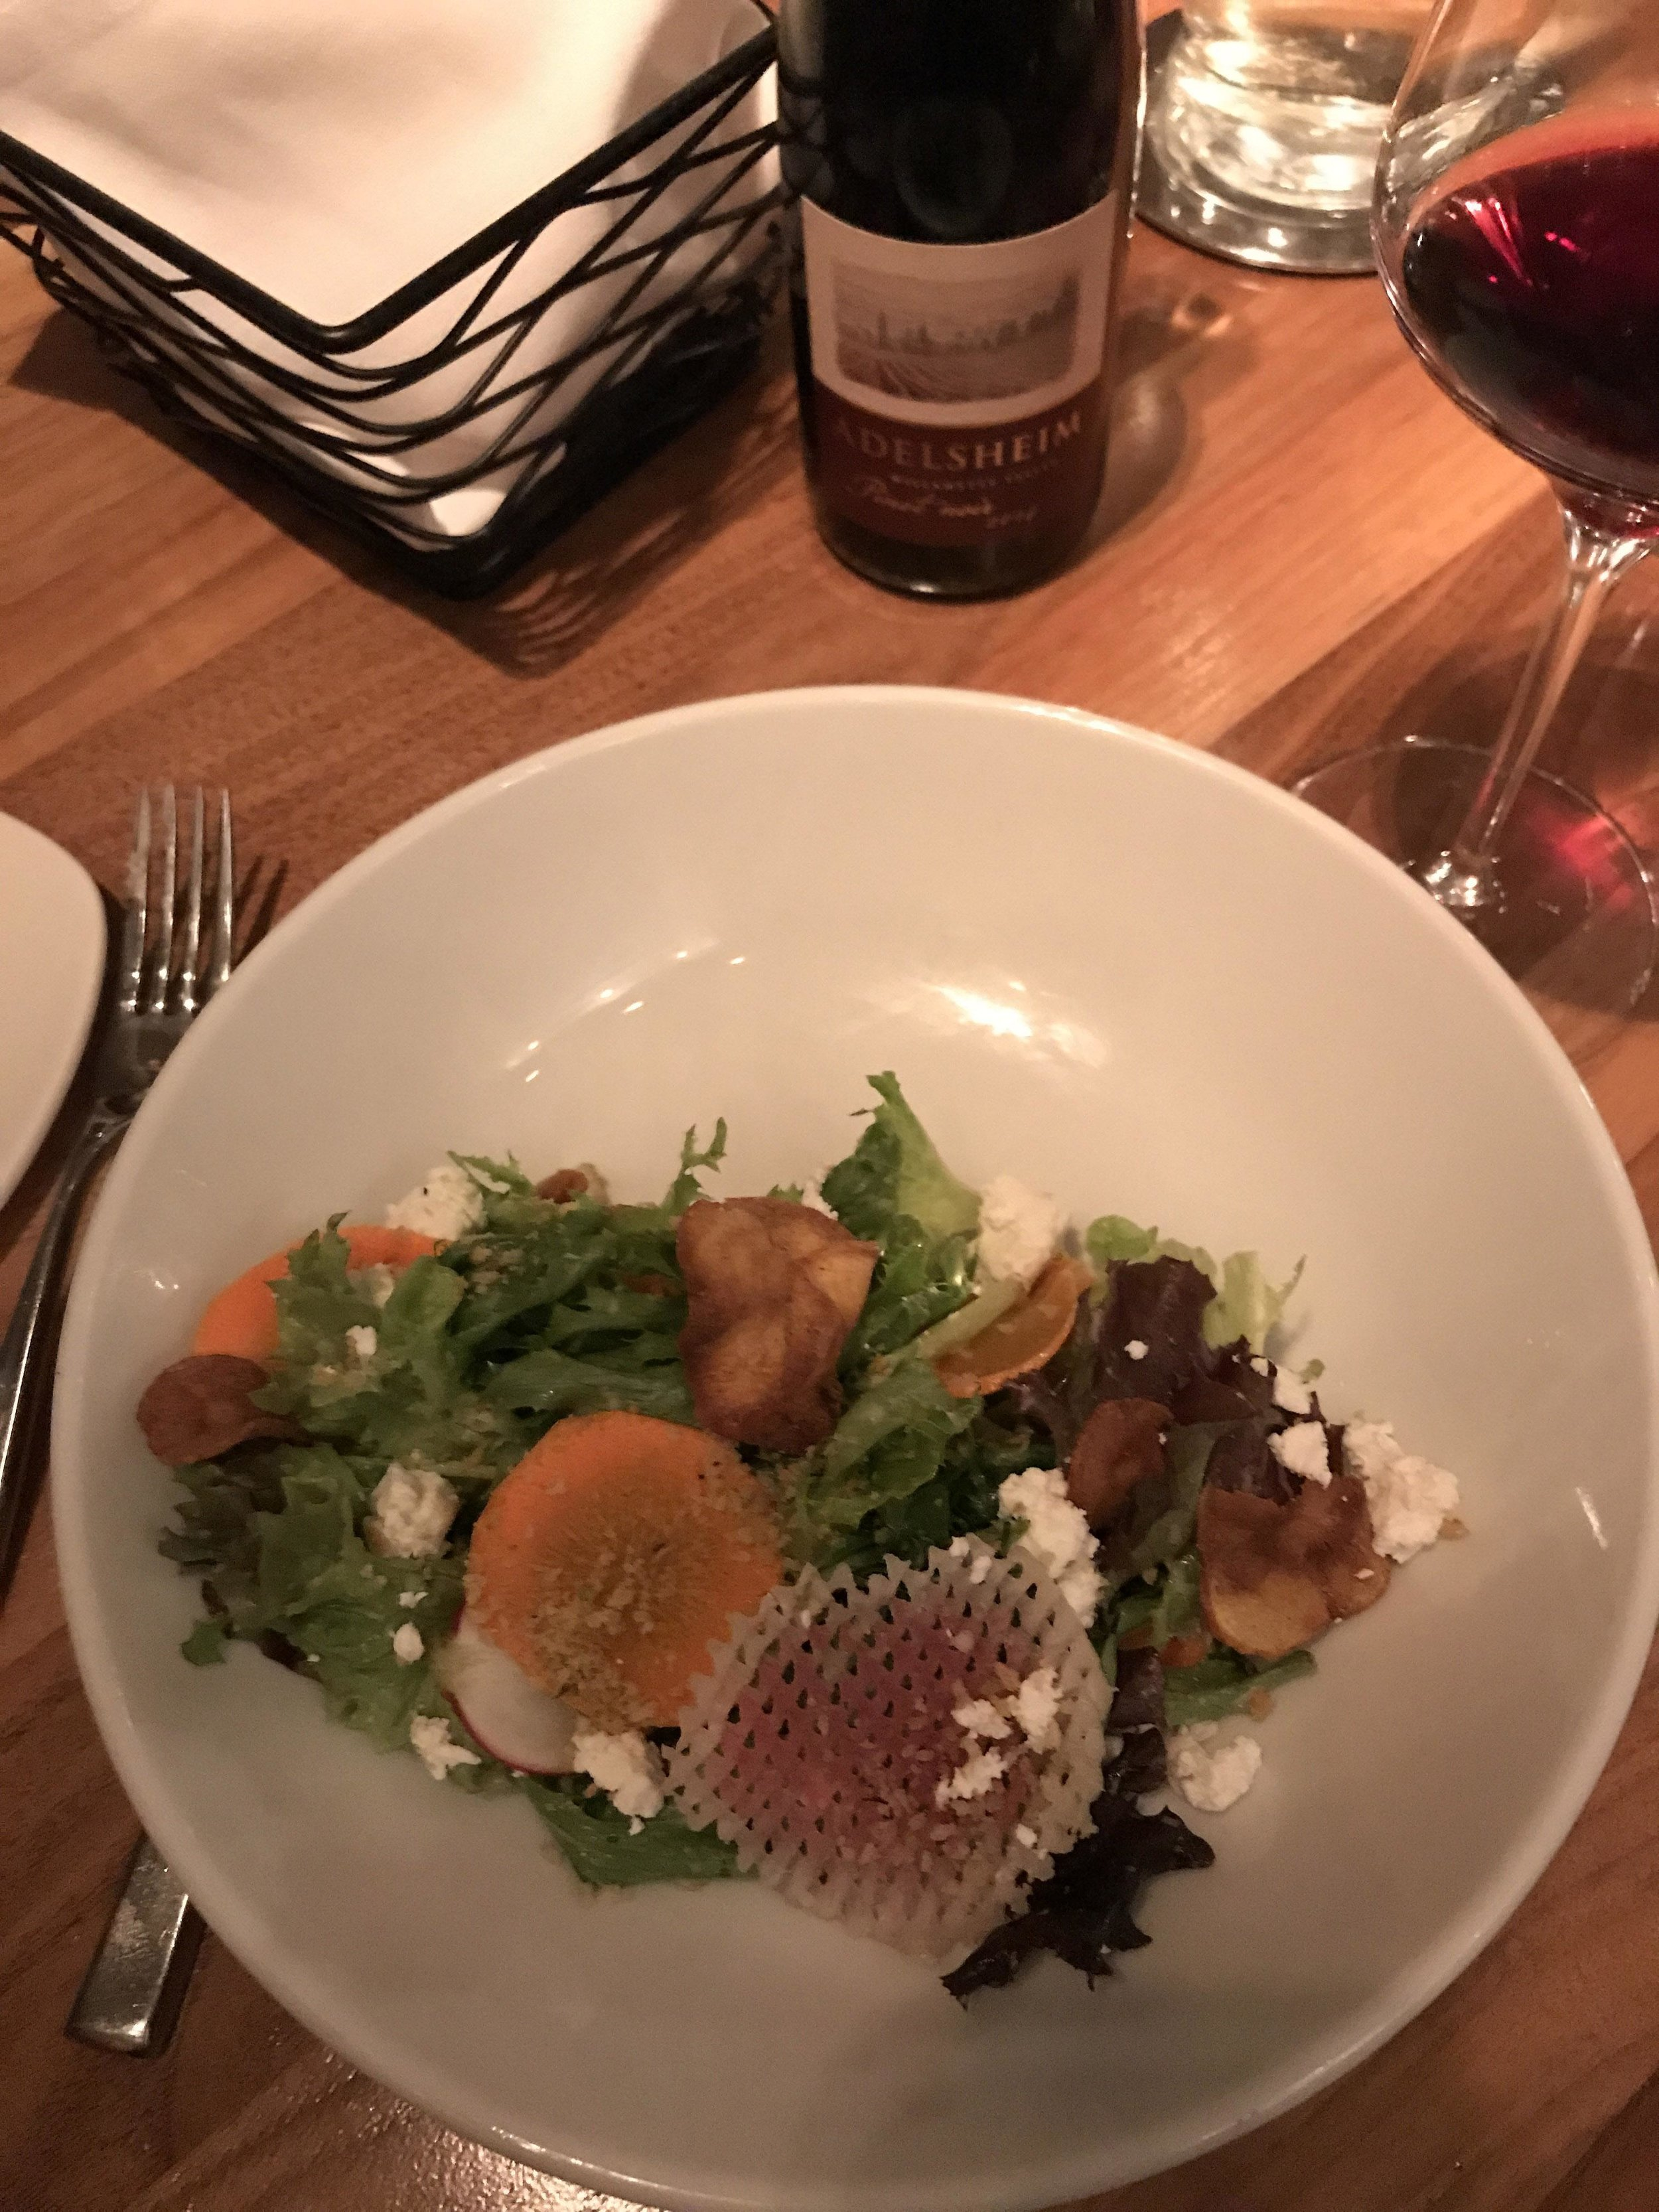 local greens with an oregon pinot noir at sea glass restaurant